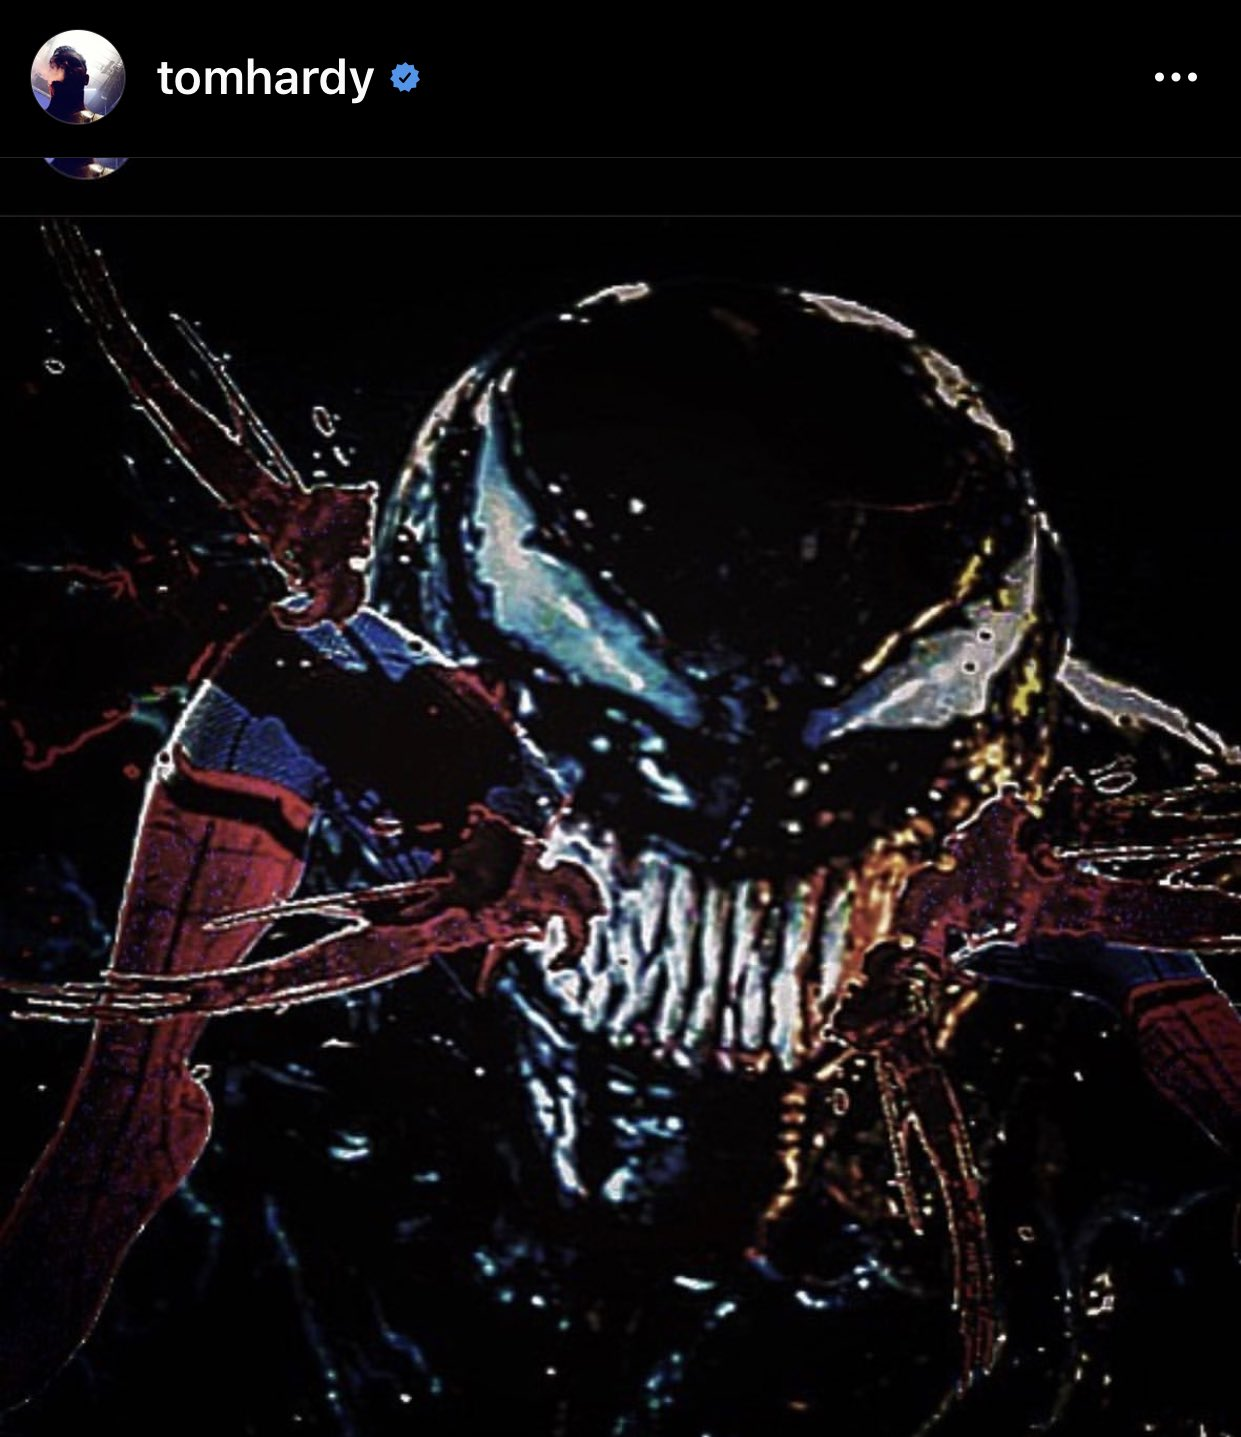 Tom Hardy Venom vs Spider-Man